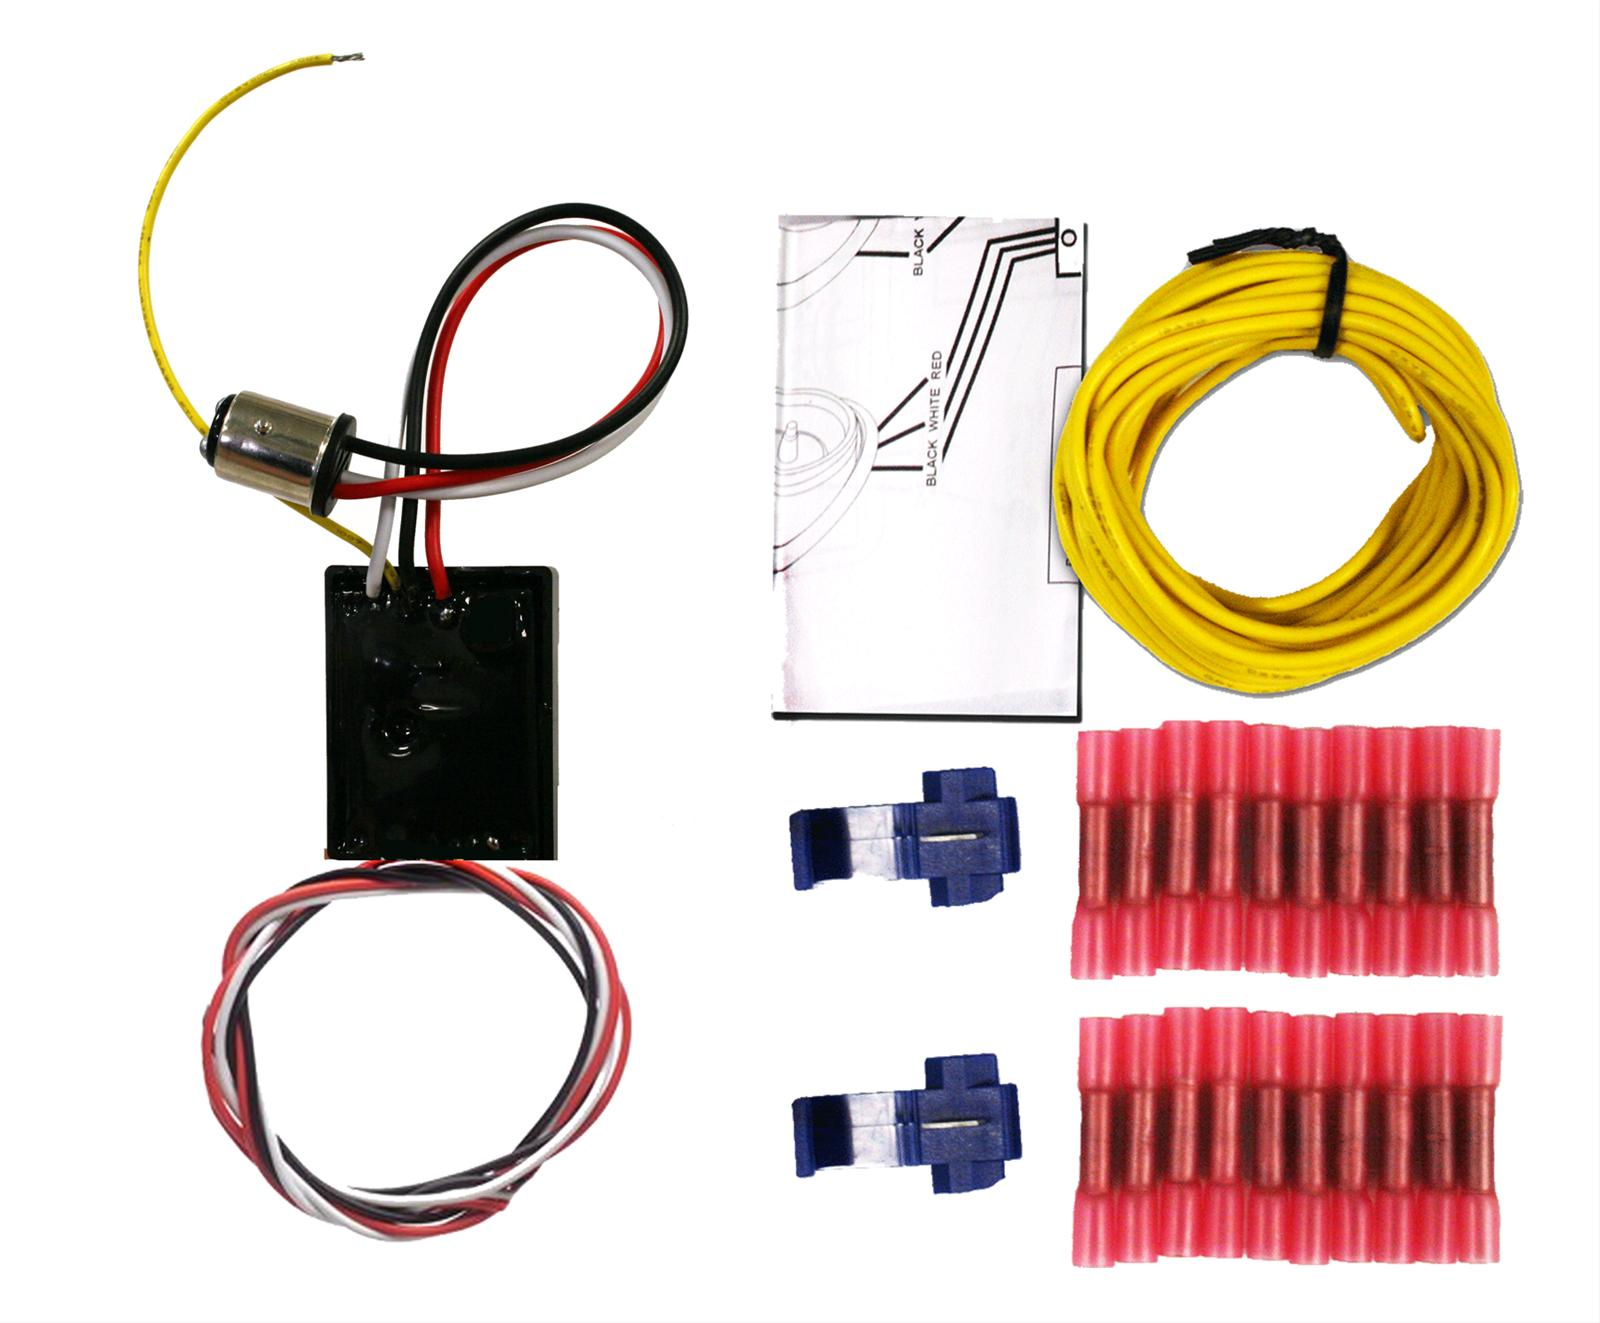 hight resolution of united pacific sequential led light kits 90656 free shipping on orders over 99 at summit racing